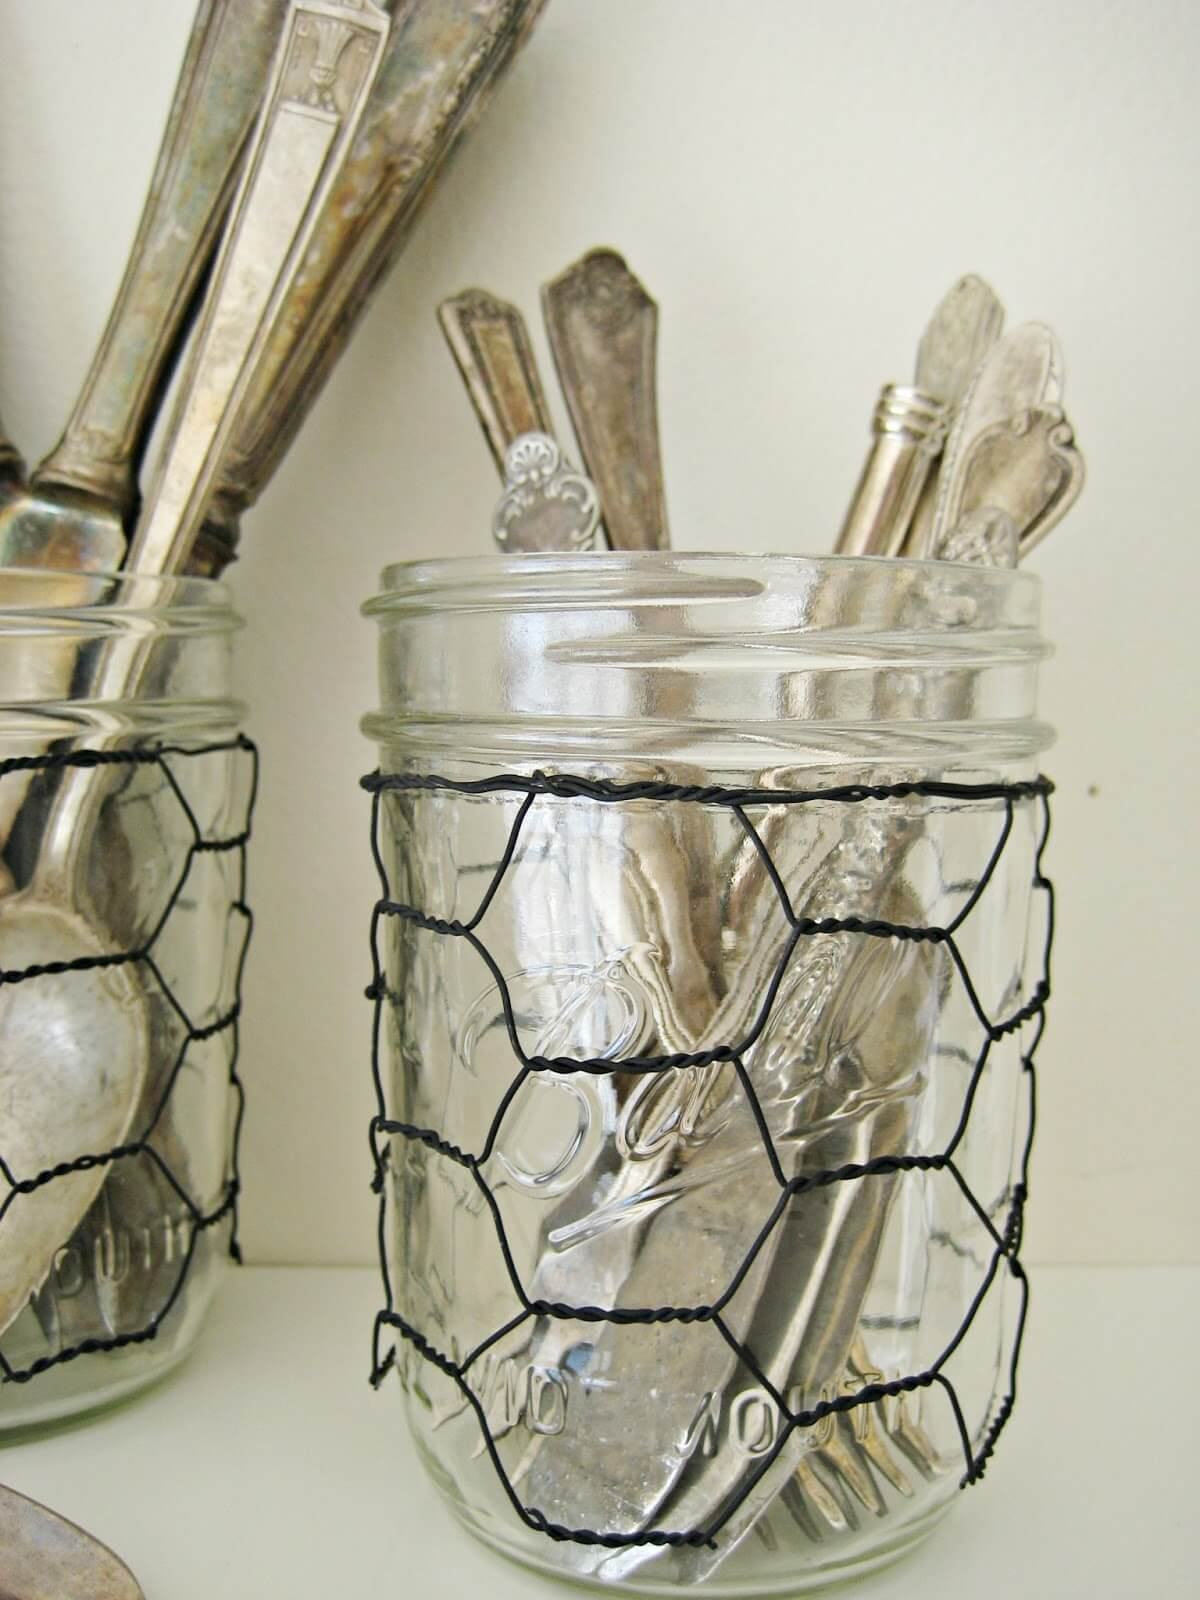 Cover Mason Jars with Chicken Wire